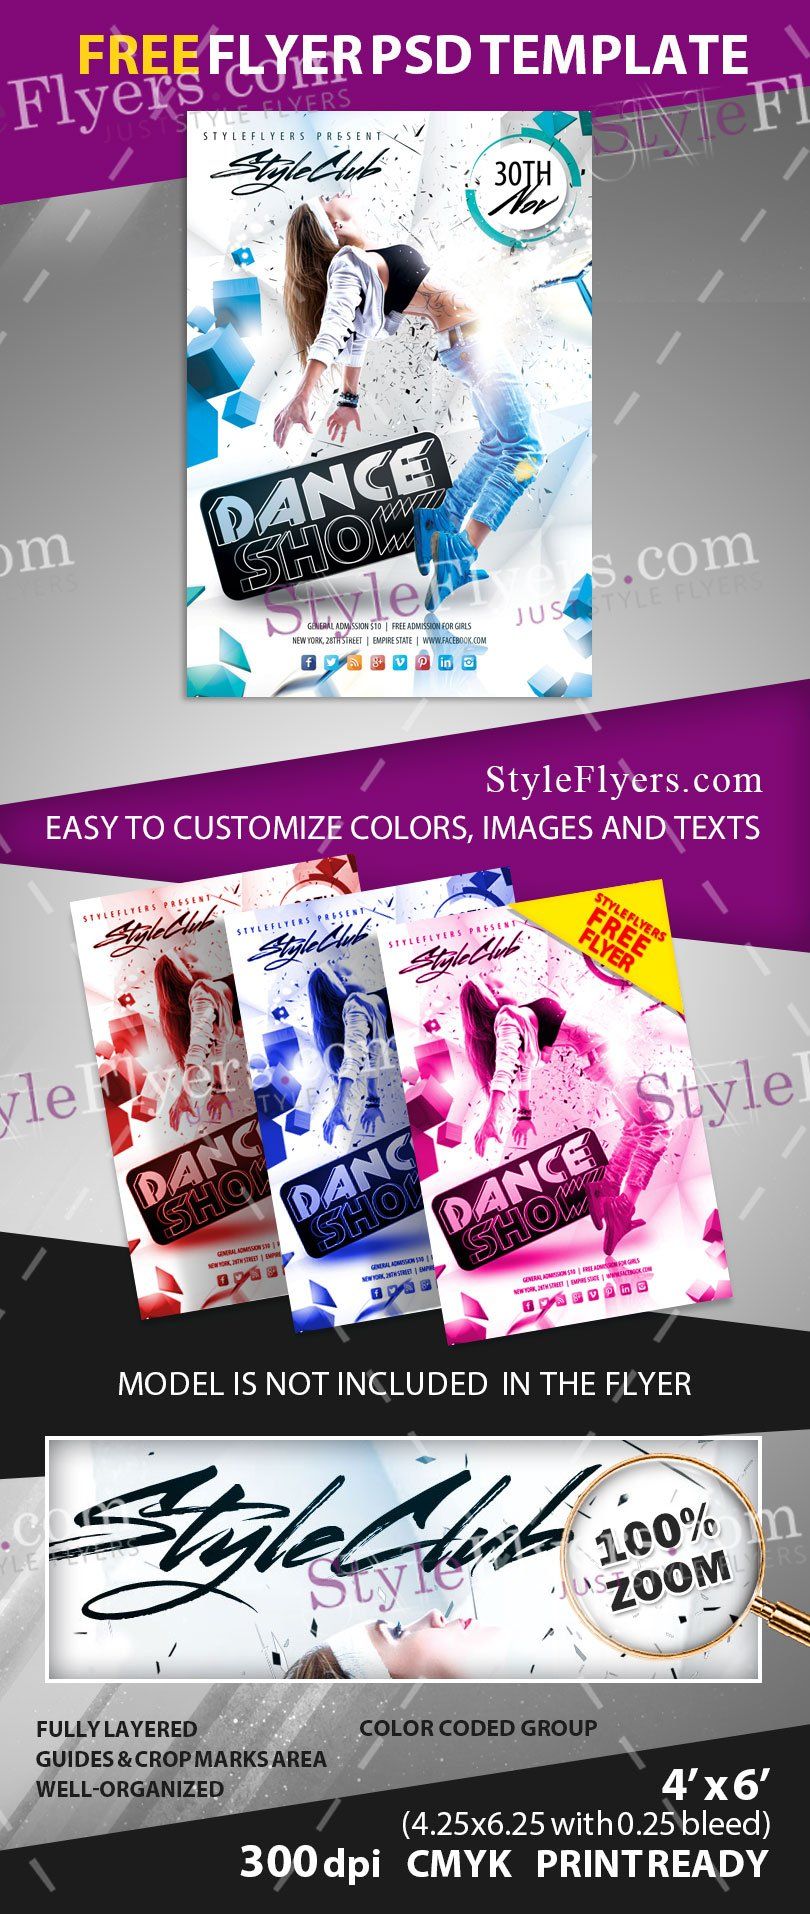 Dance Show FREE PSD Flyer Template Free Download #13024 - Styleflyers